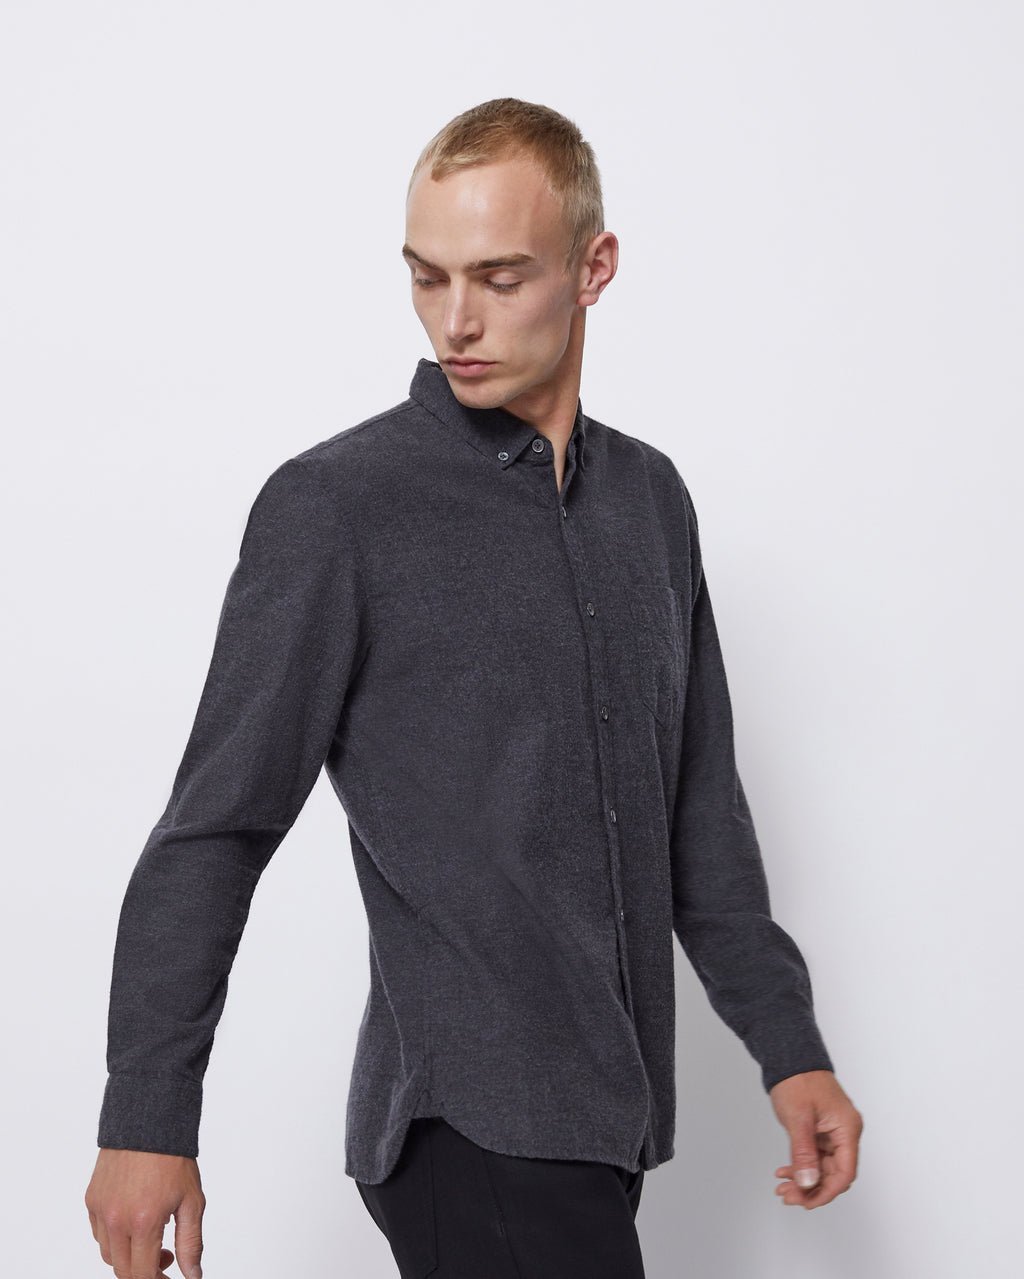 The Hansen Shirt in Charcoal